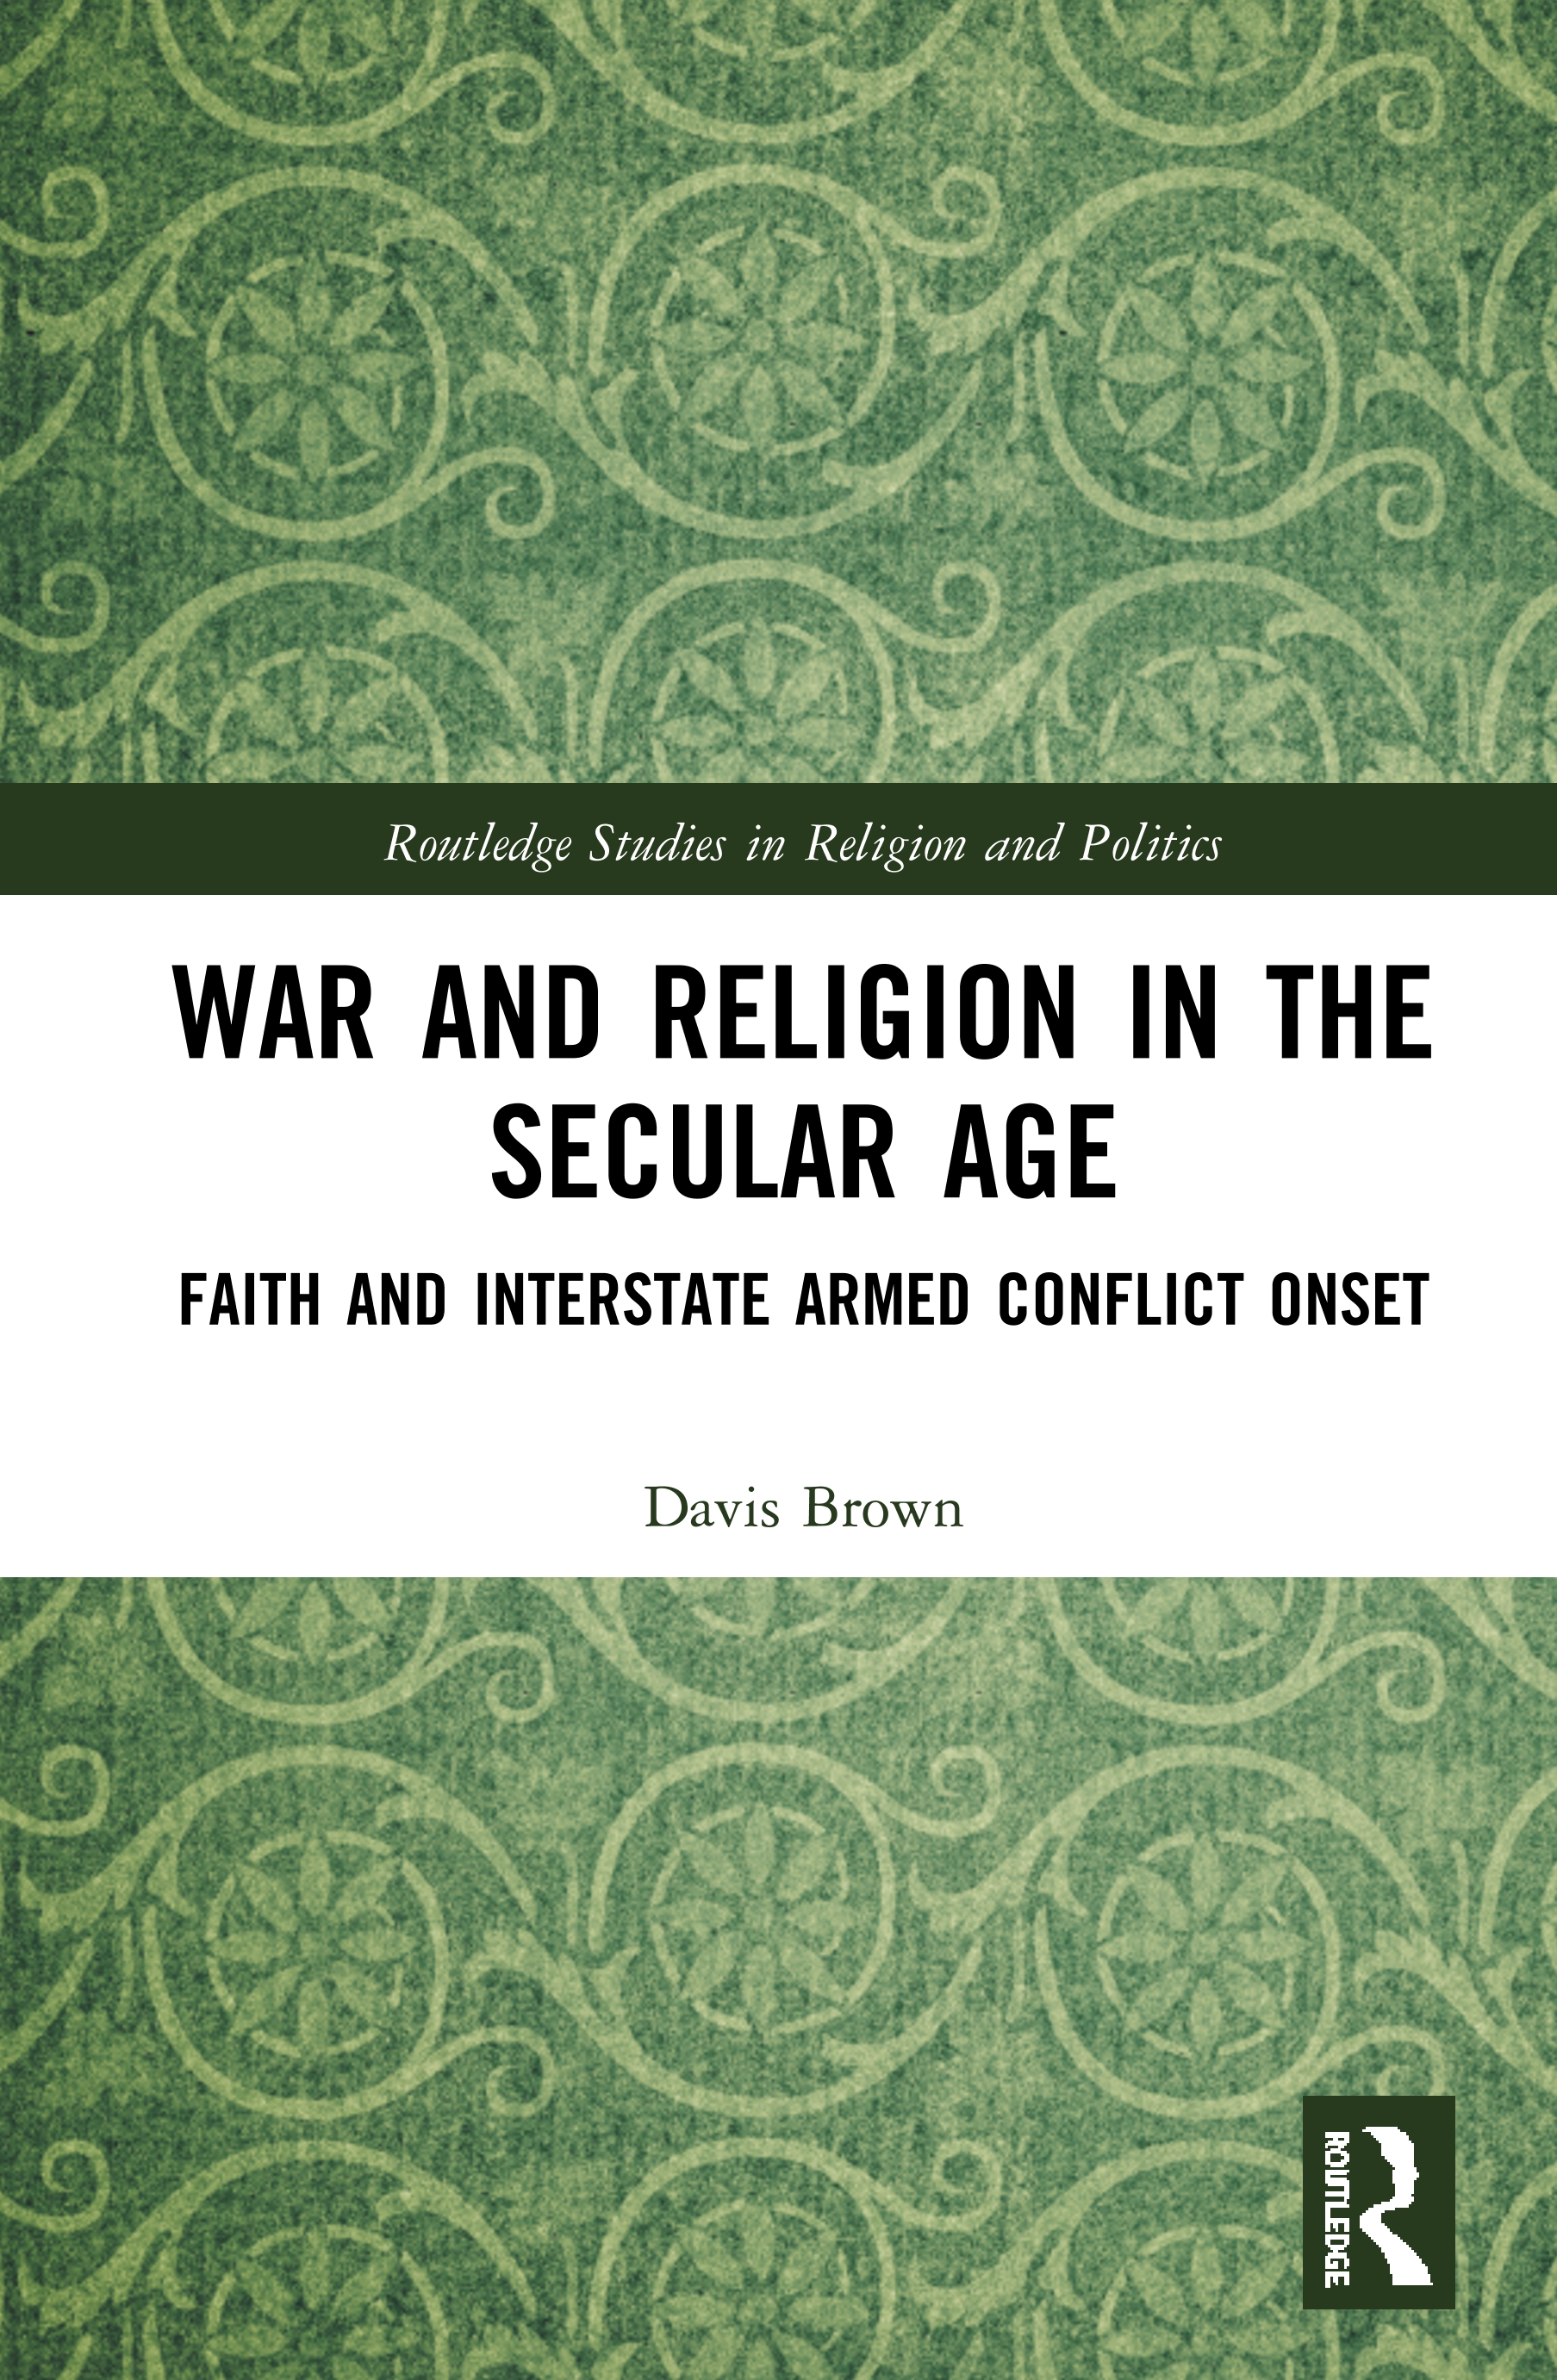 War and Religion in the Secular Age: Faith and Interstate Armed Conflict Onset, 1st Edition (Hardback) book cover